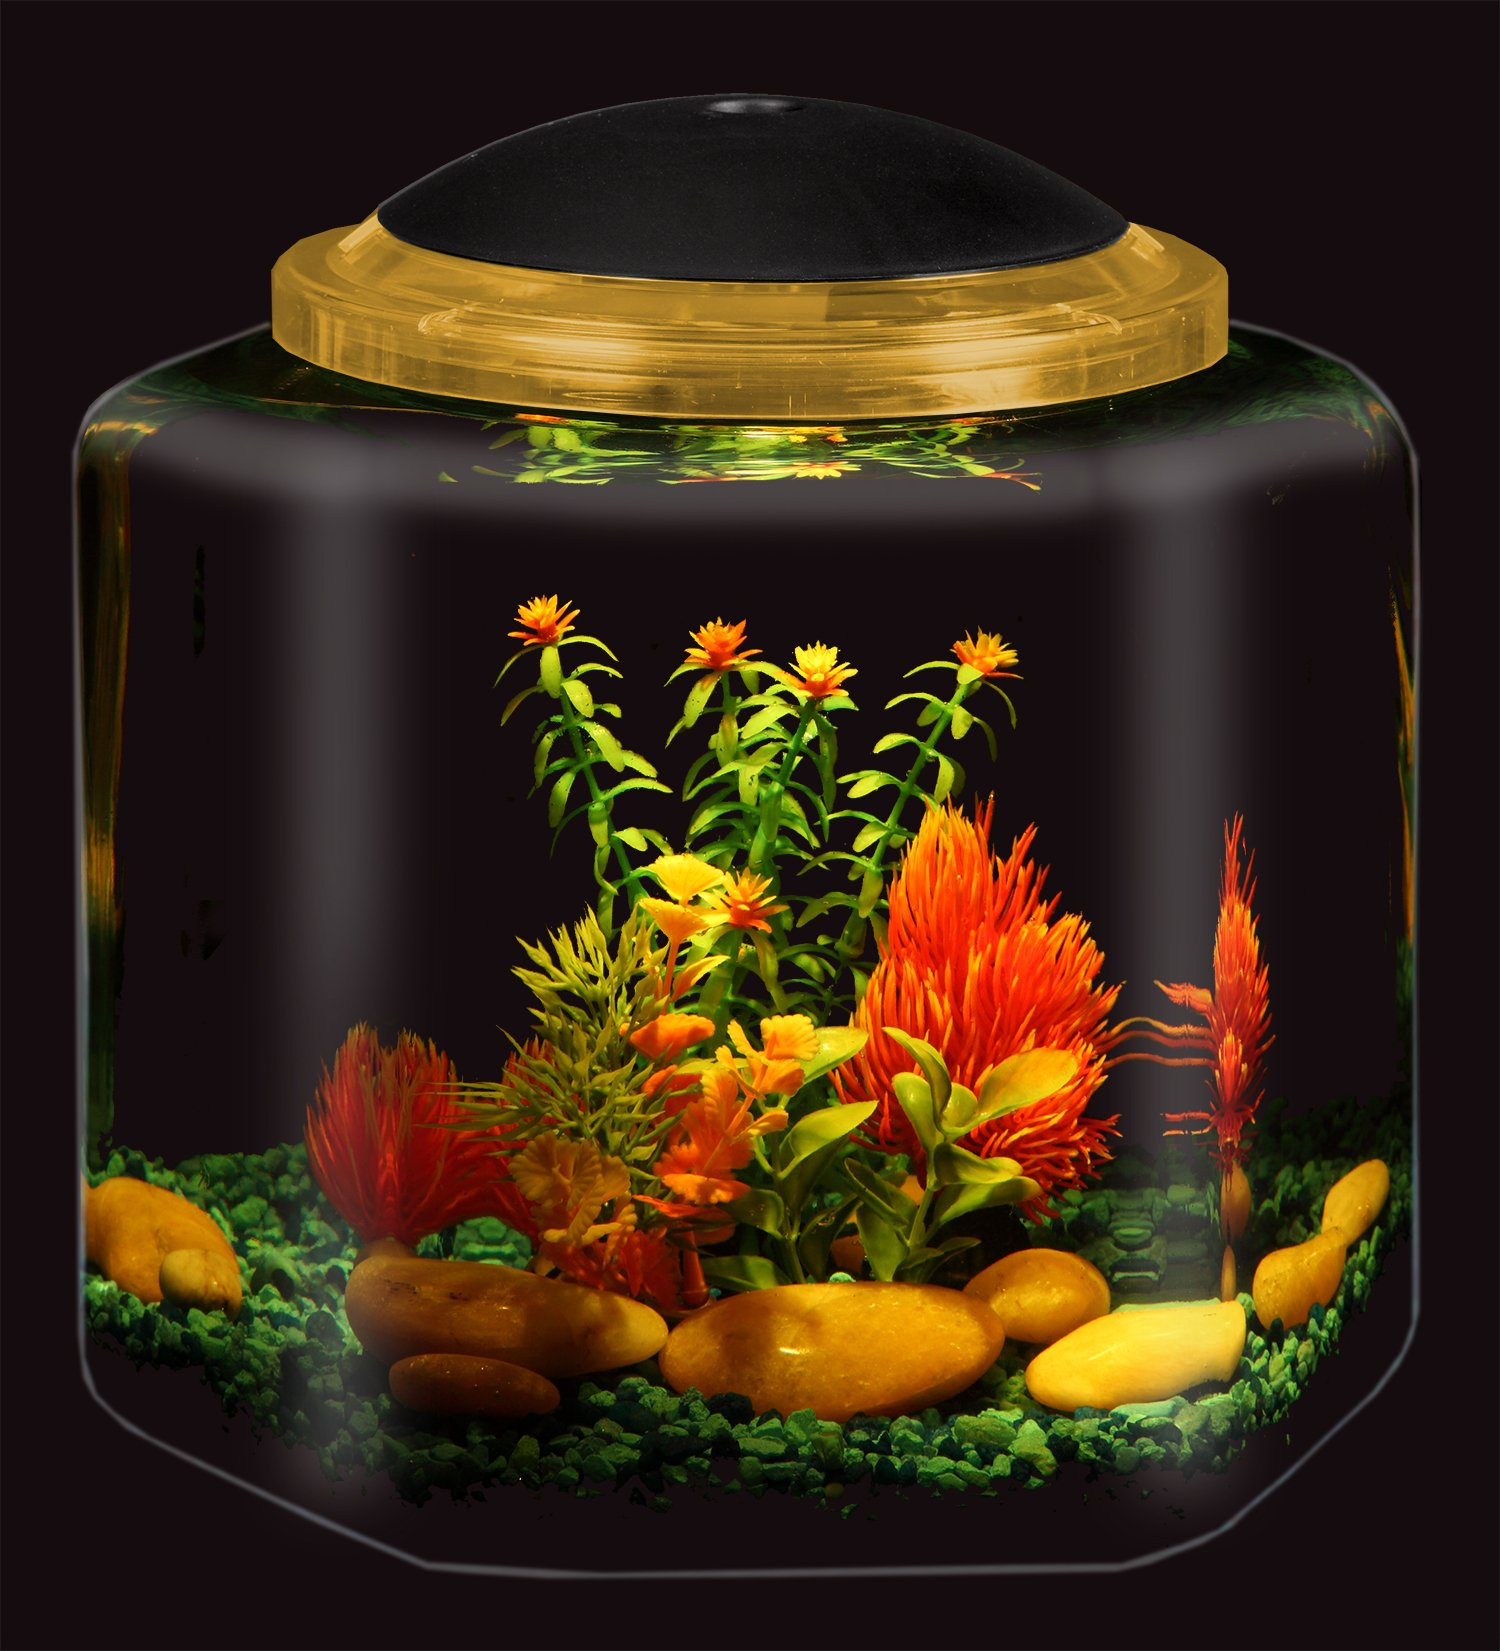 The Nifty Nook Exclusive Design New Good Luck Decorative Gold Antiqued Elephant Glass Fish Bowl Tabletop Aquarium or Terrarium or Candle Holder,New 1 Gallon Size Fish Bowl with River Rocks